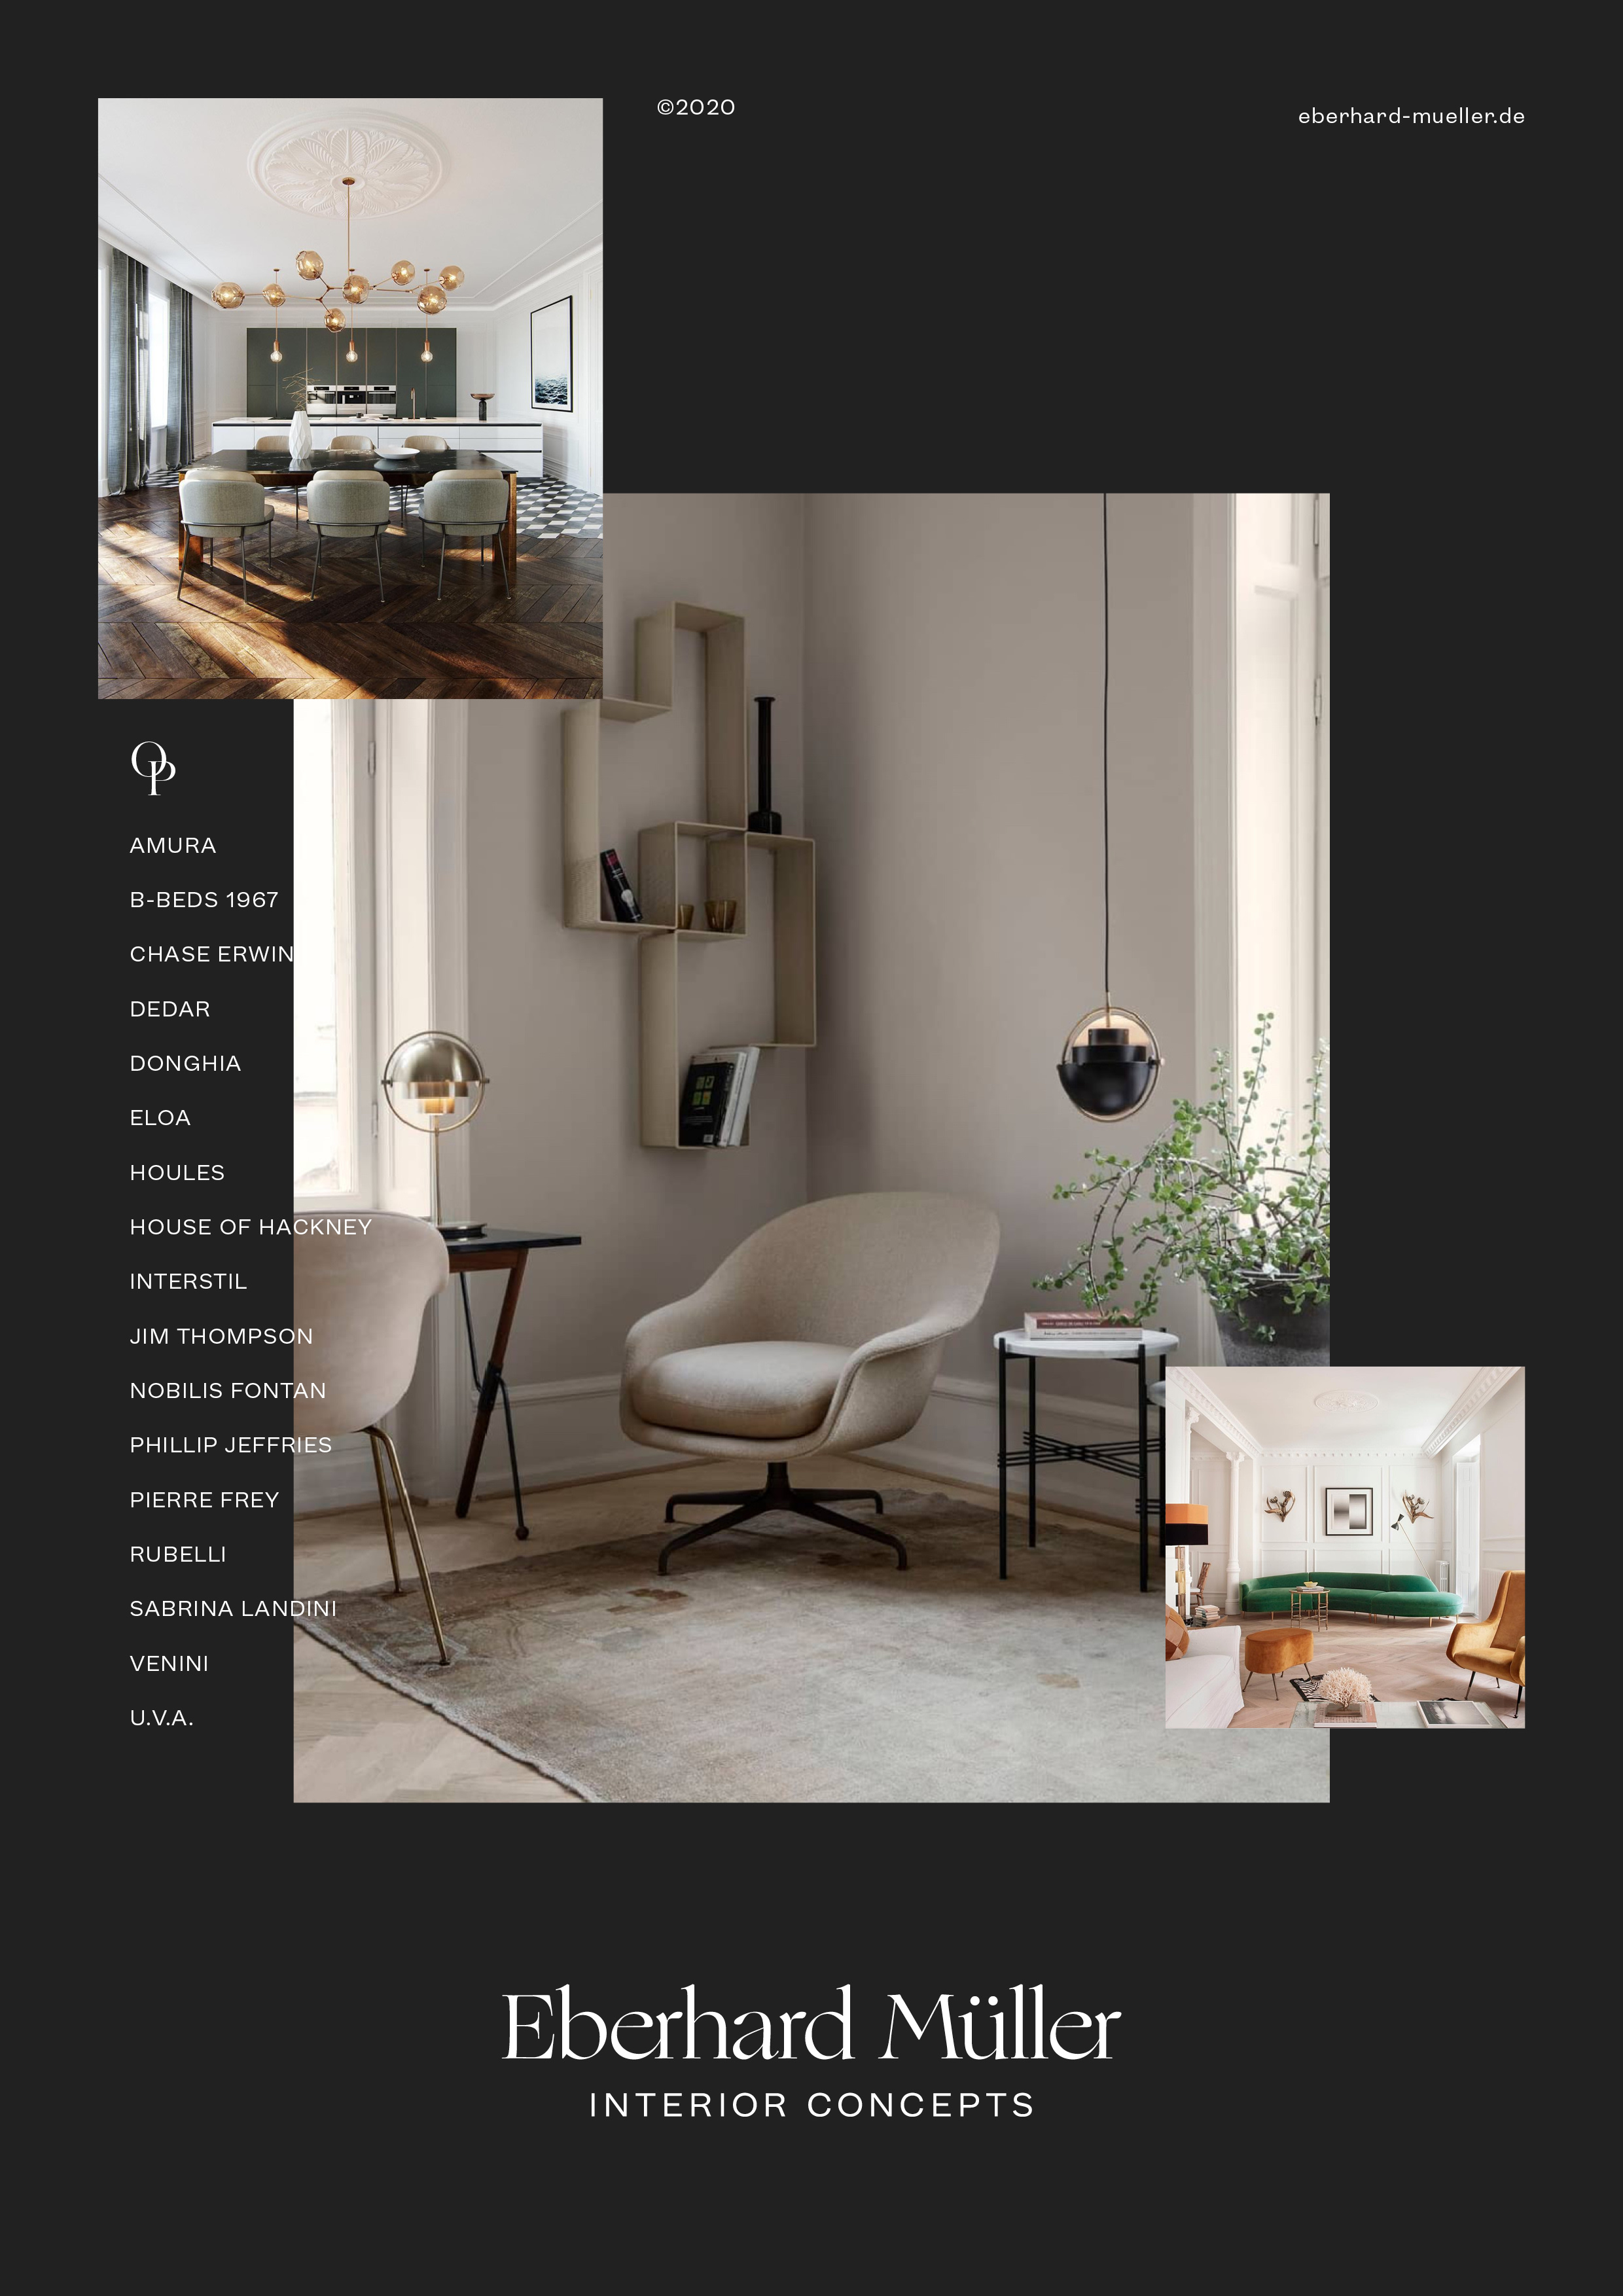 The finished page showcases highlights of interior design by Eberhard Mueller